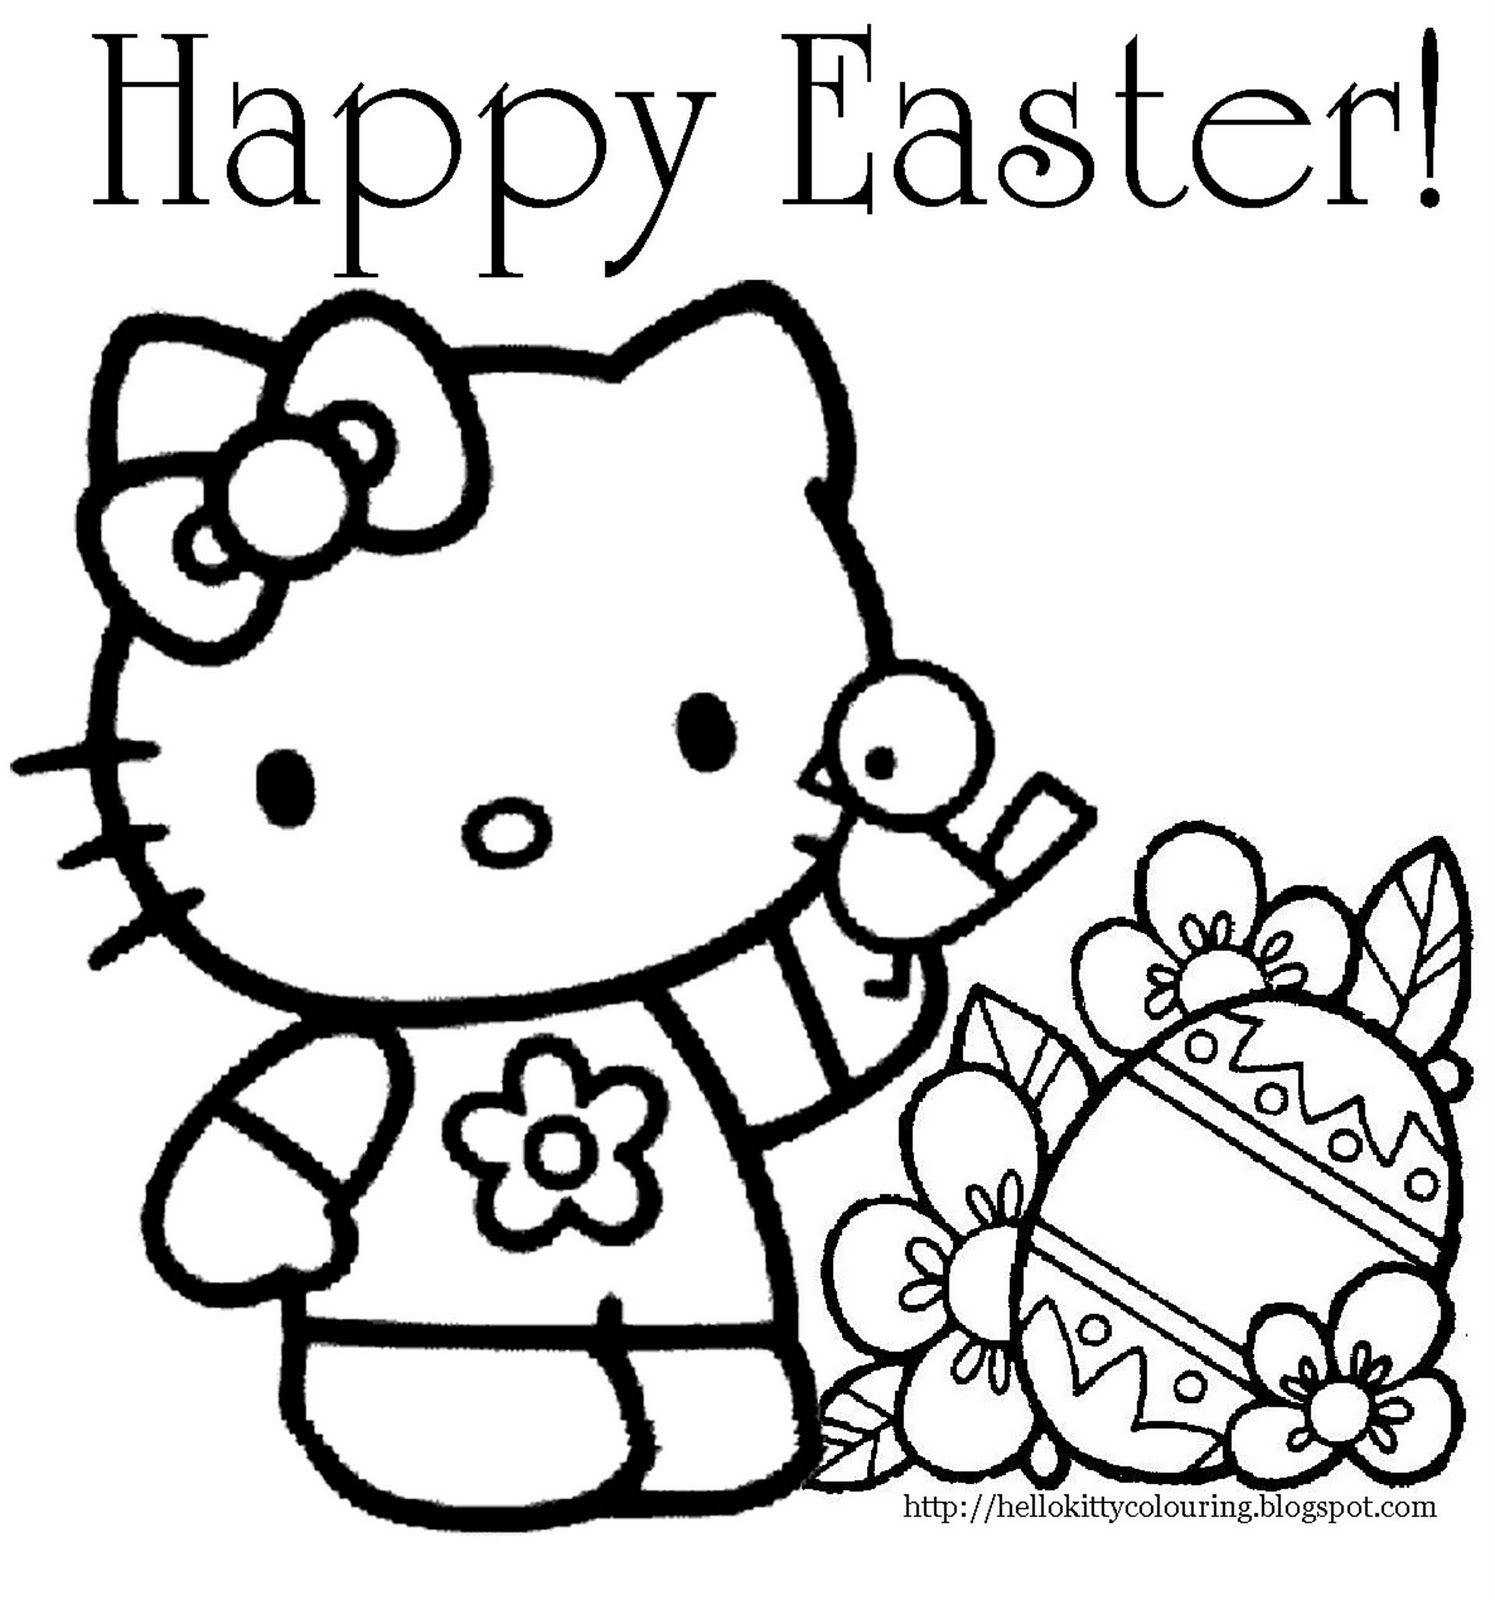 Hilla Kitte Coloriing Hello Kitty Easter Coloring Page Books